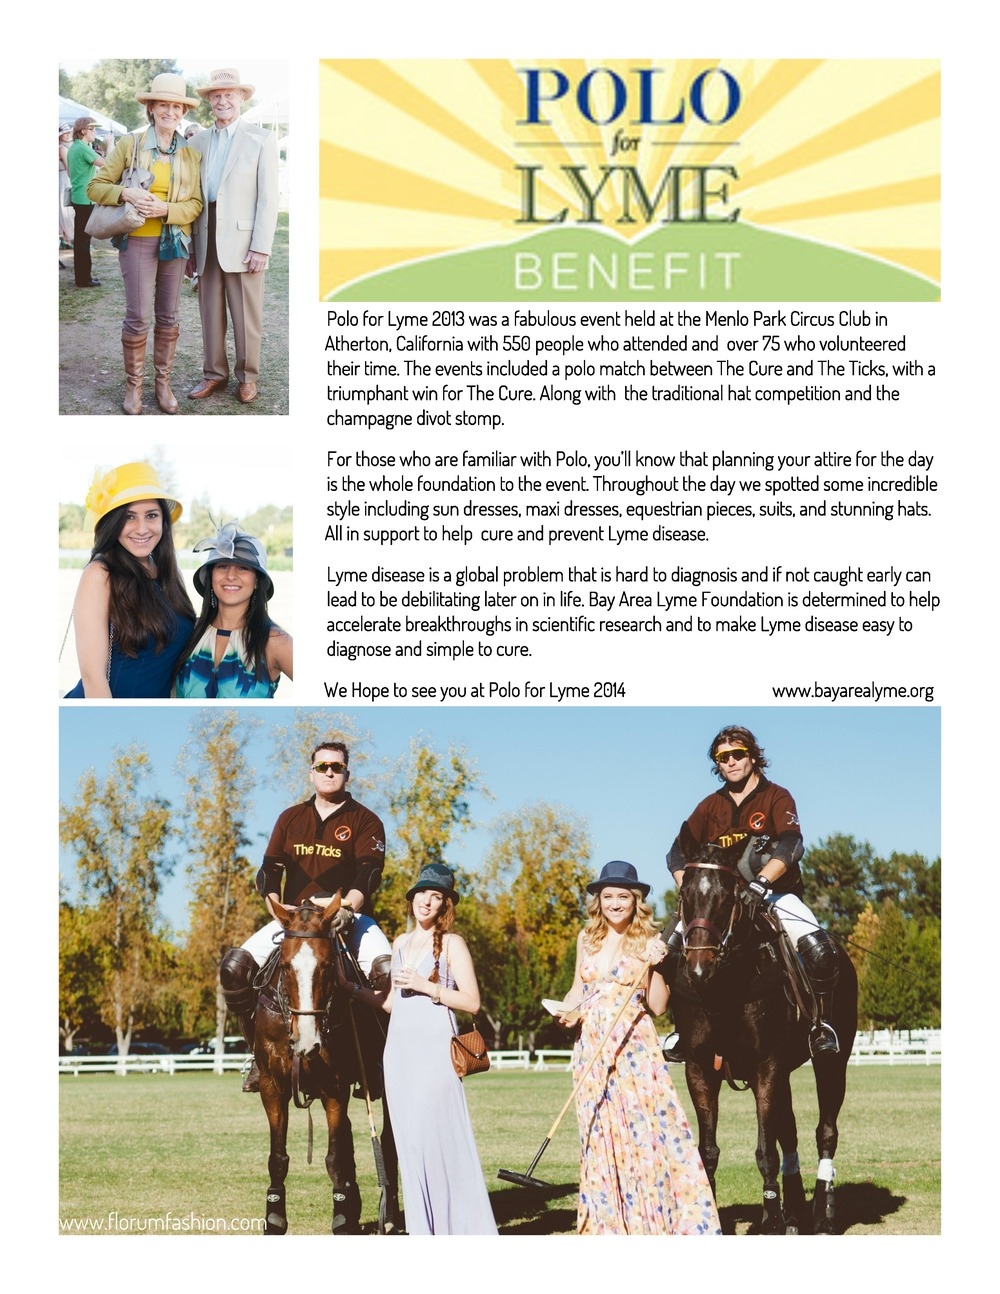 Polo for Lyme benefiting Bay Area Lyme Foundation / Photographed by Stephen Sun / Menlo Park Circus Club